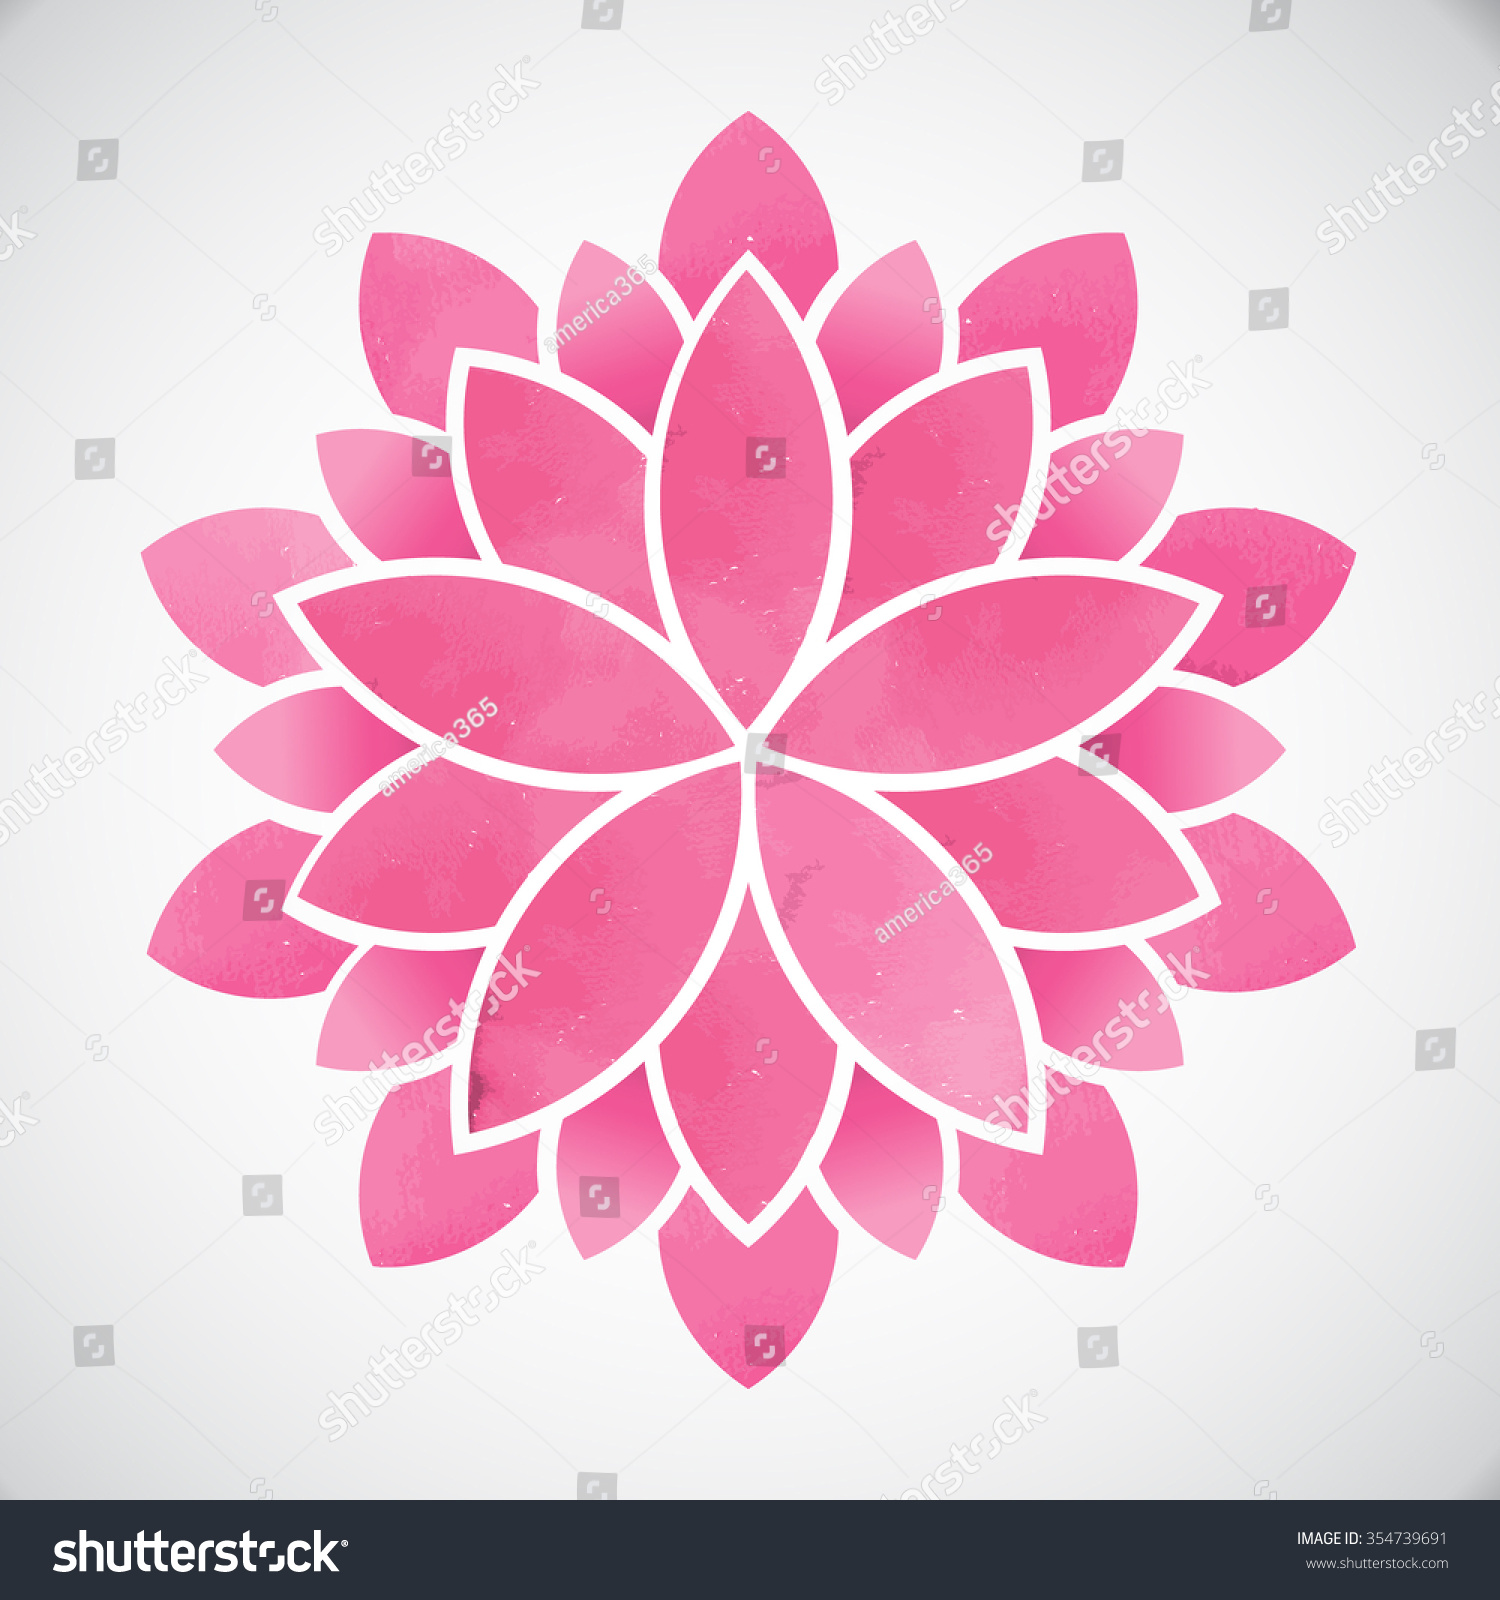 Lotus flower watercolor style vector graphic design stock vector lotus flowerwatercolor style vector graphic design izmirmasajfo